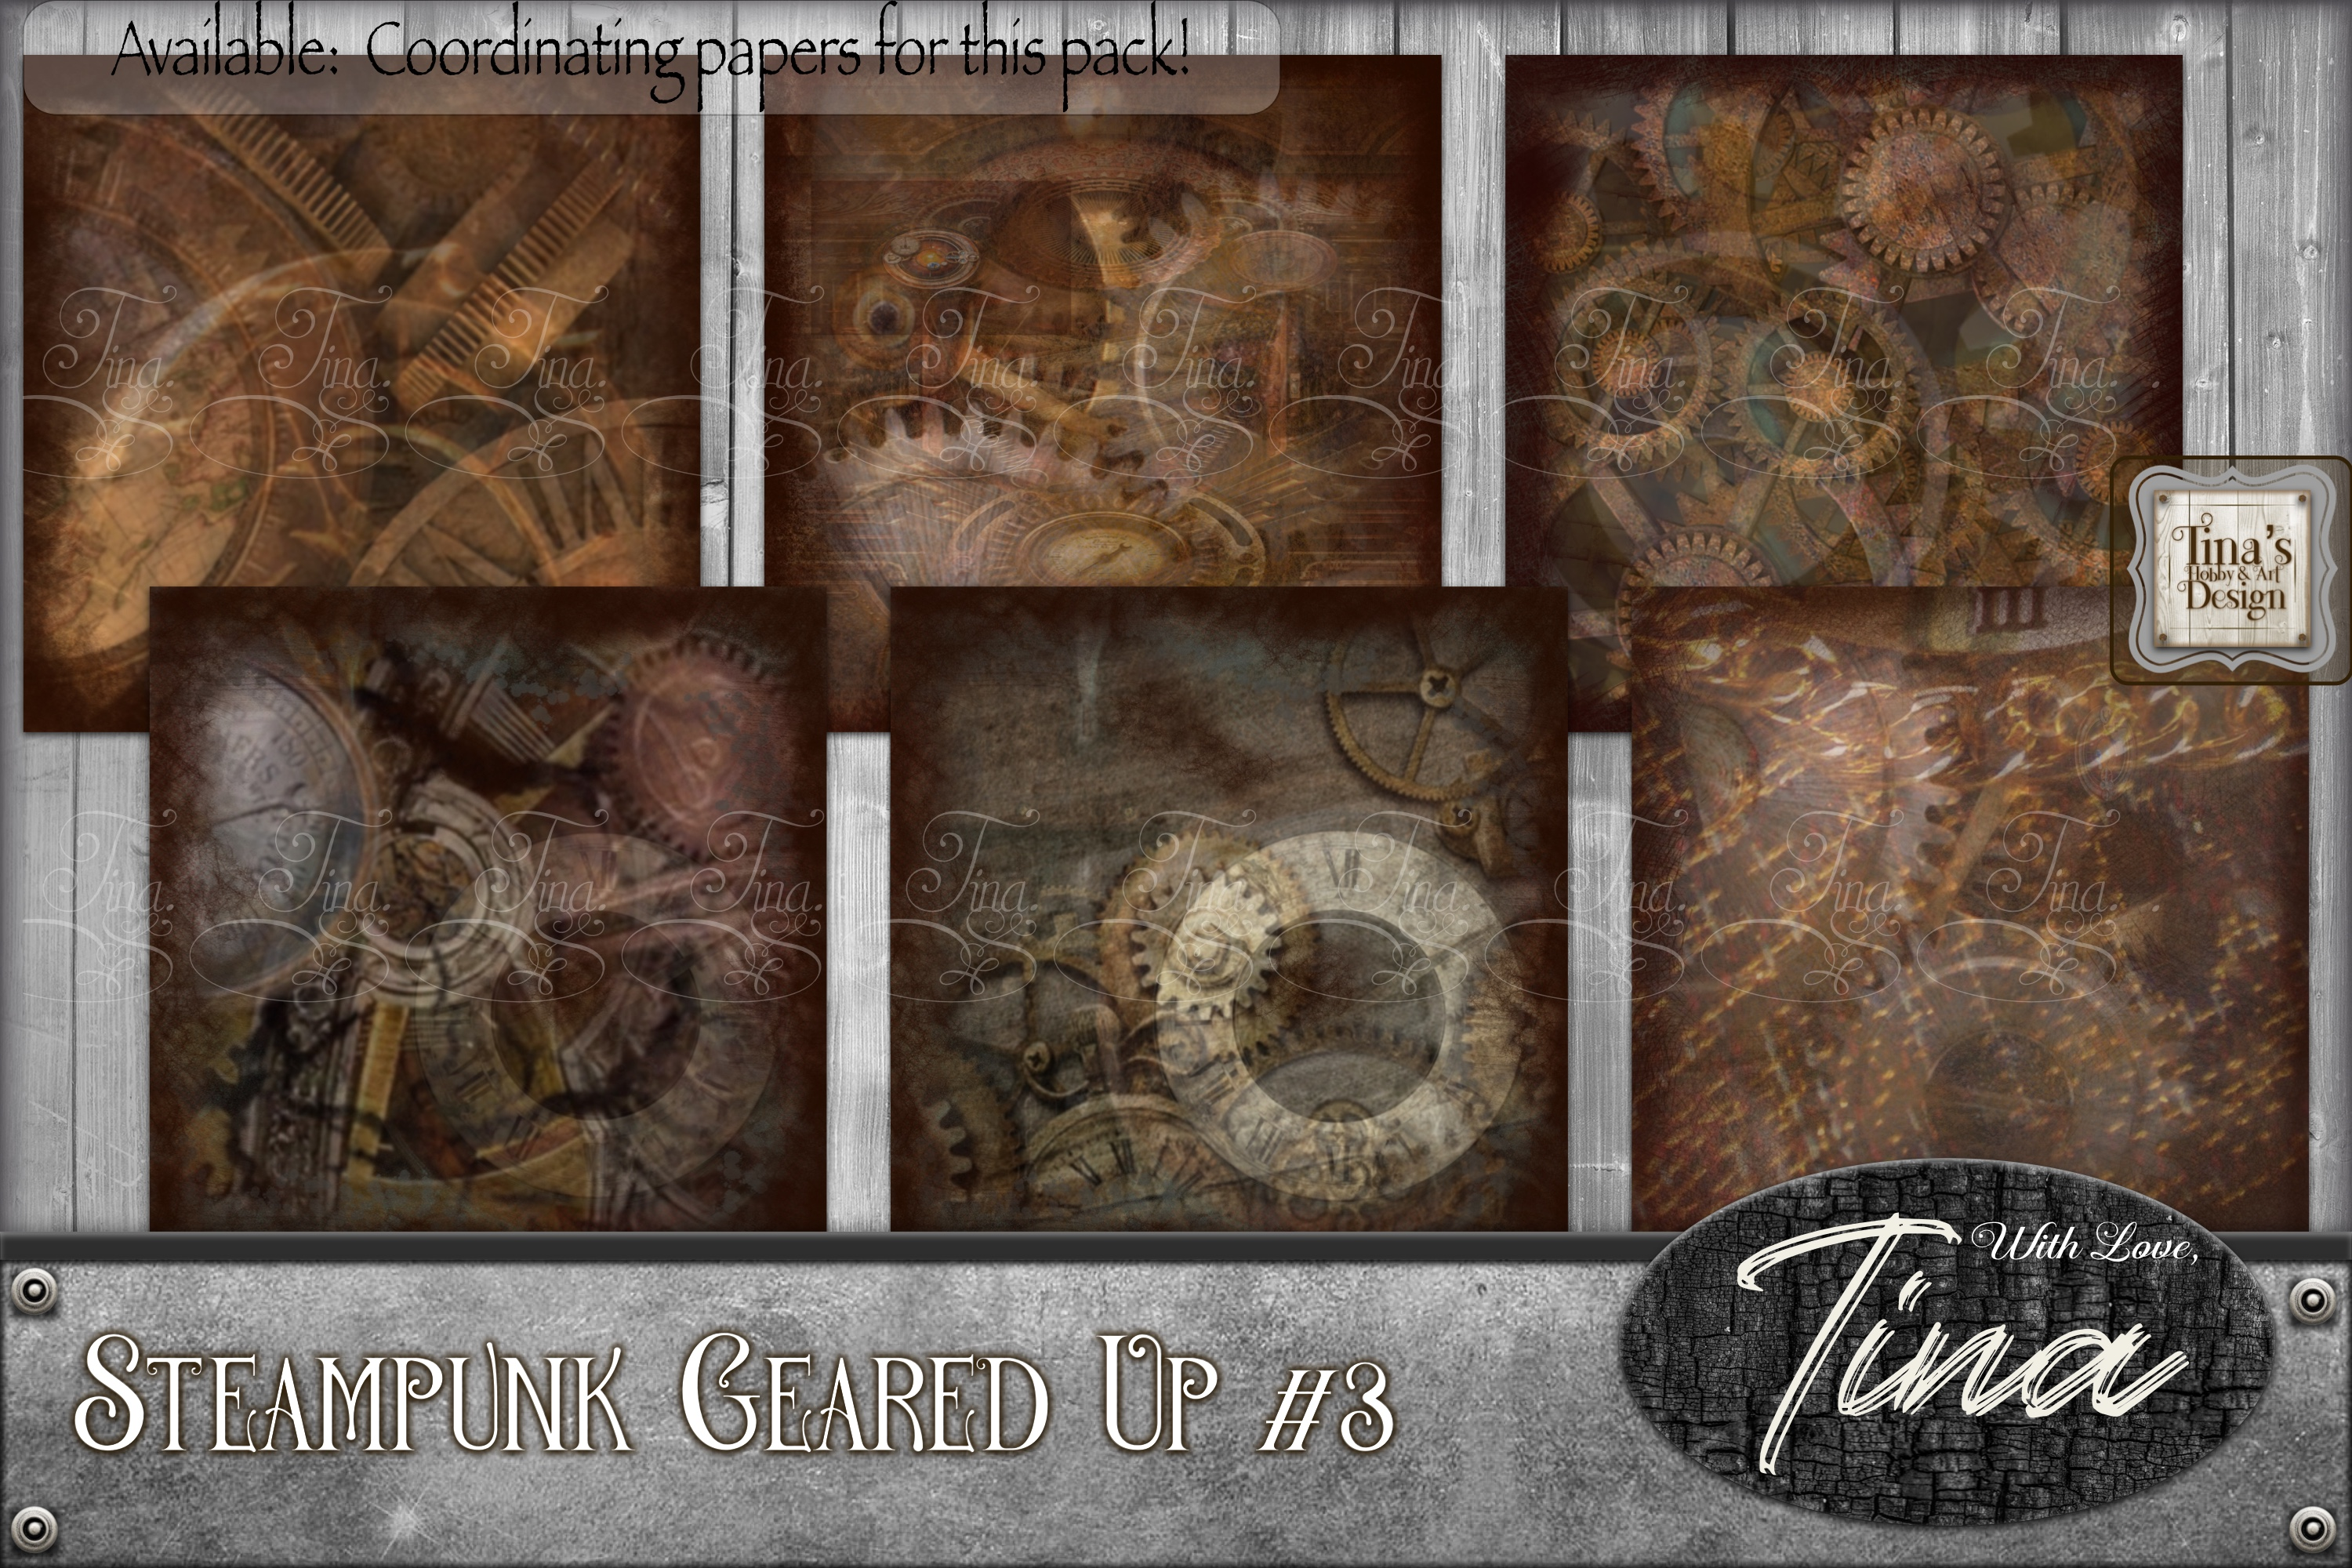 Steampunk Geared Up Gears Clocks Grunge 092918GU3 example image 1